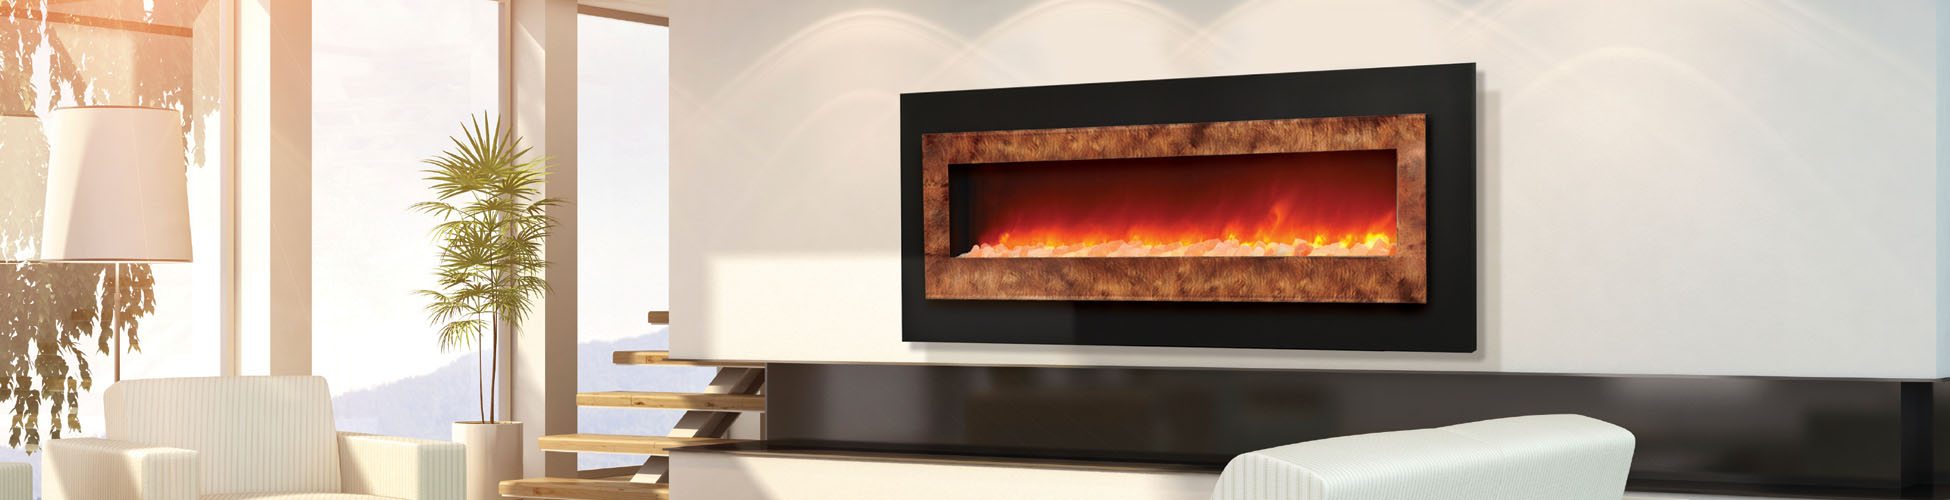 WM-FML-85 electric fireplace by Sierra Flame